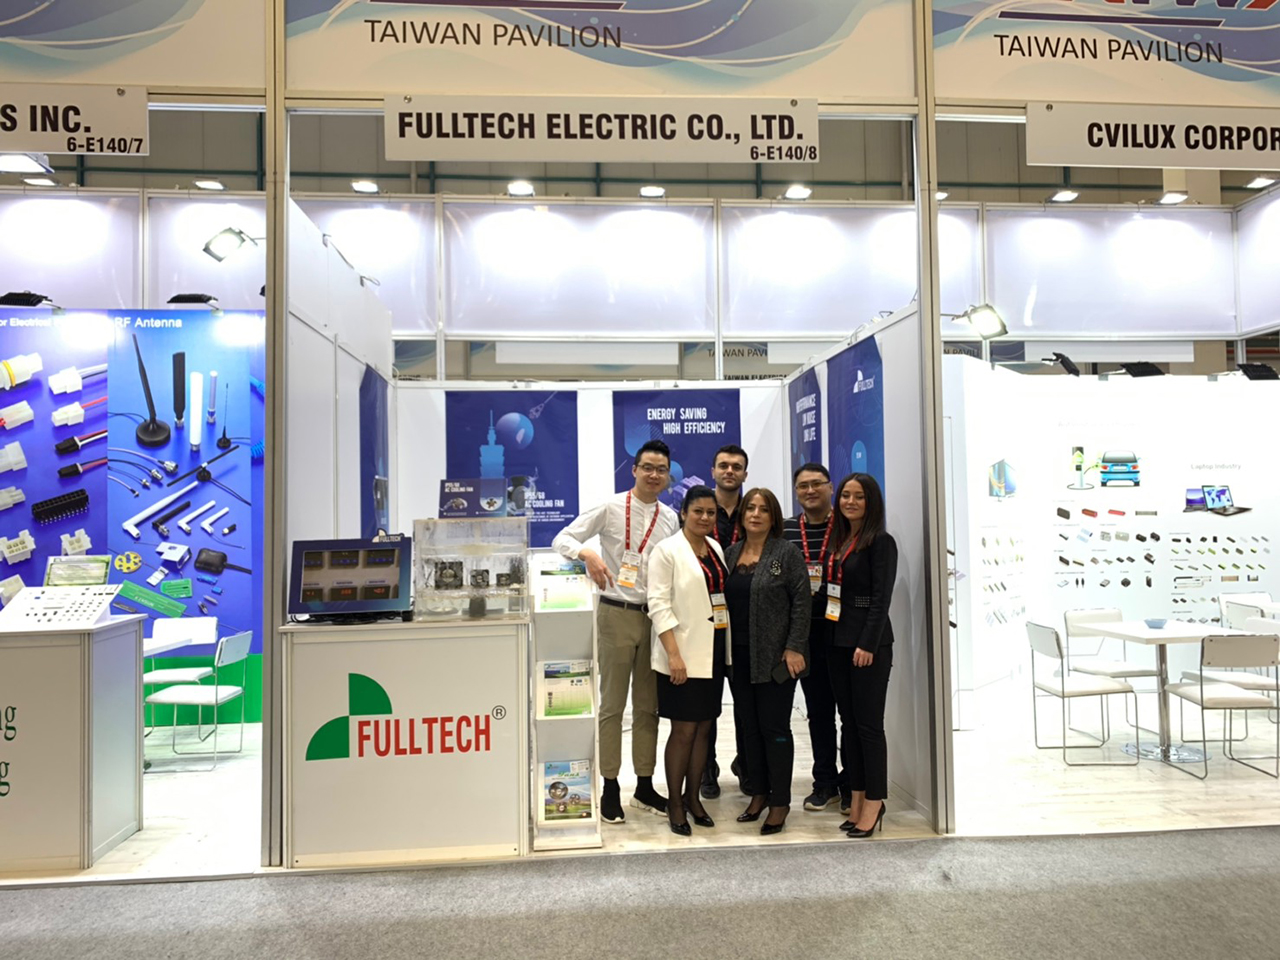 2019 WIN EURASIA is the first exhibition Fulltech Electric Co., Ltd. attended in Turkey